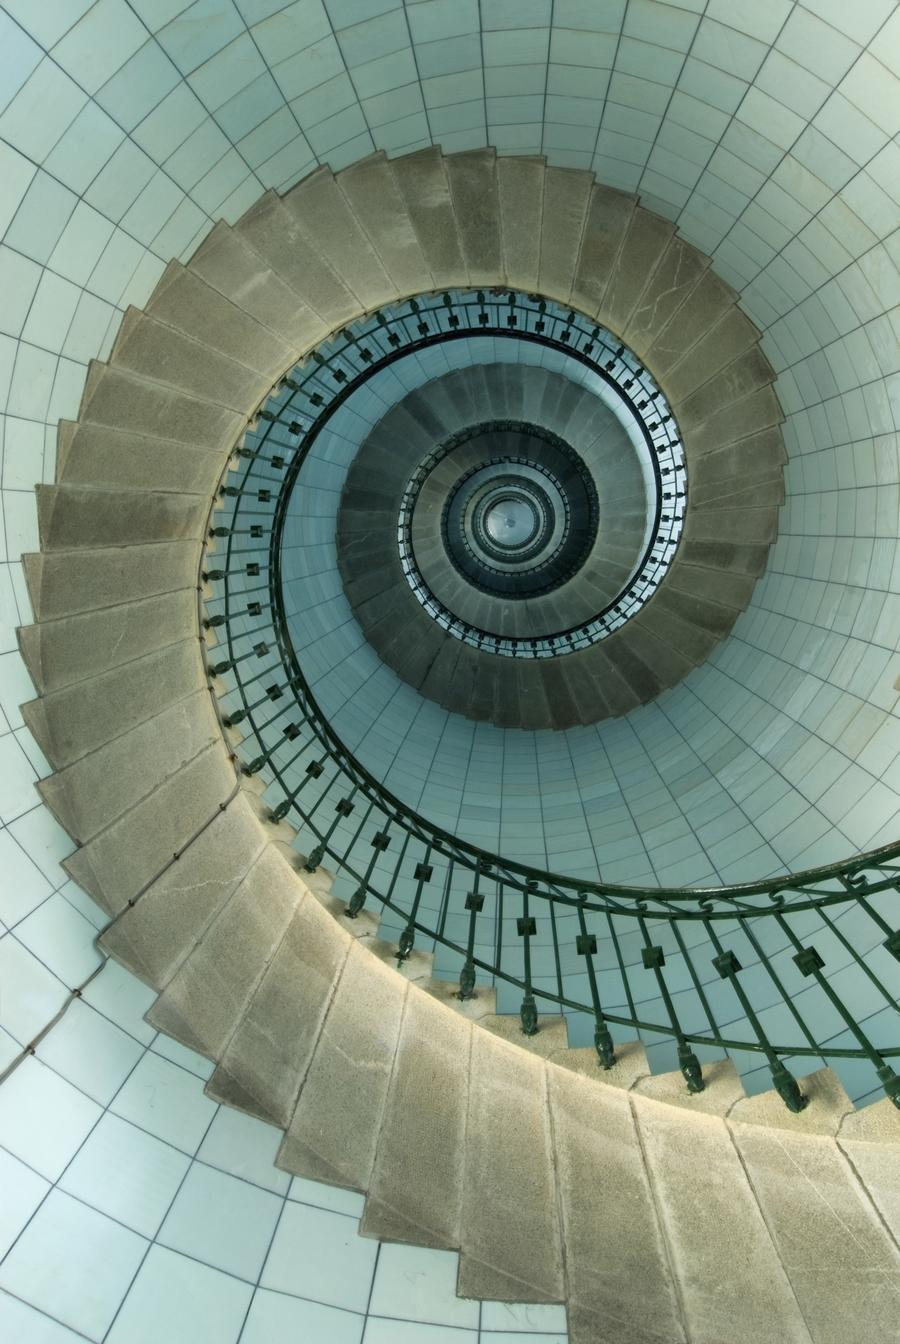 Looking up the spiral staircase of the lighthouse for Circular stair